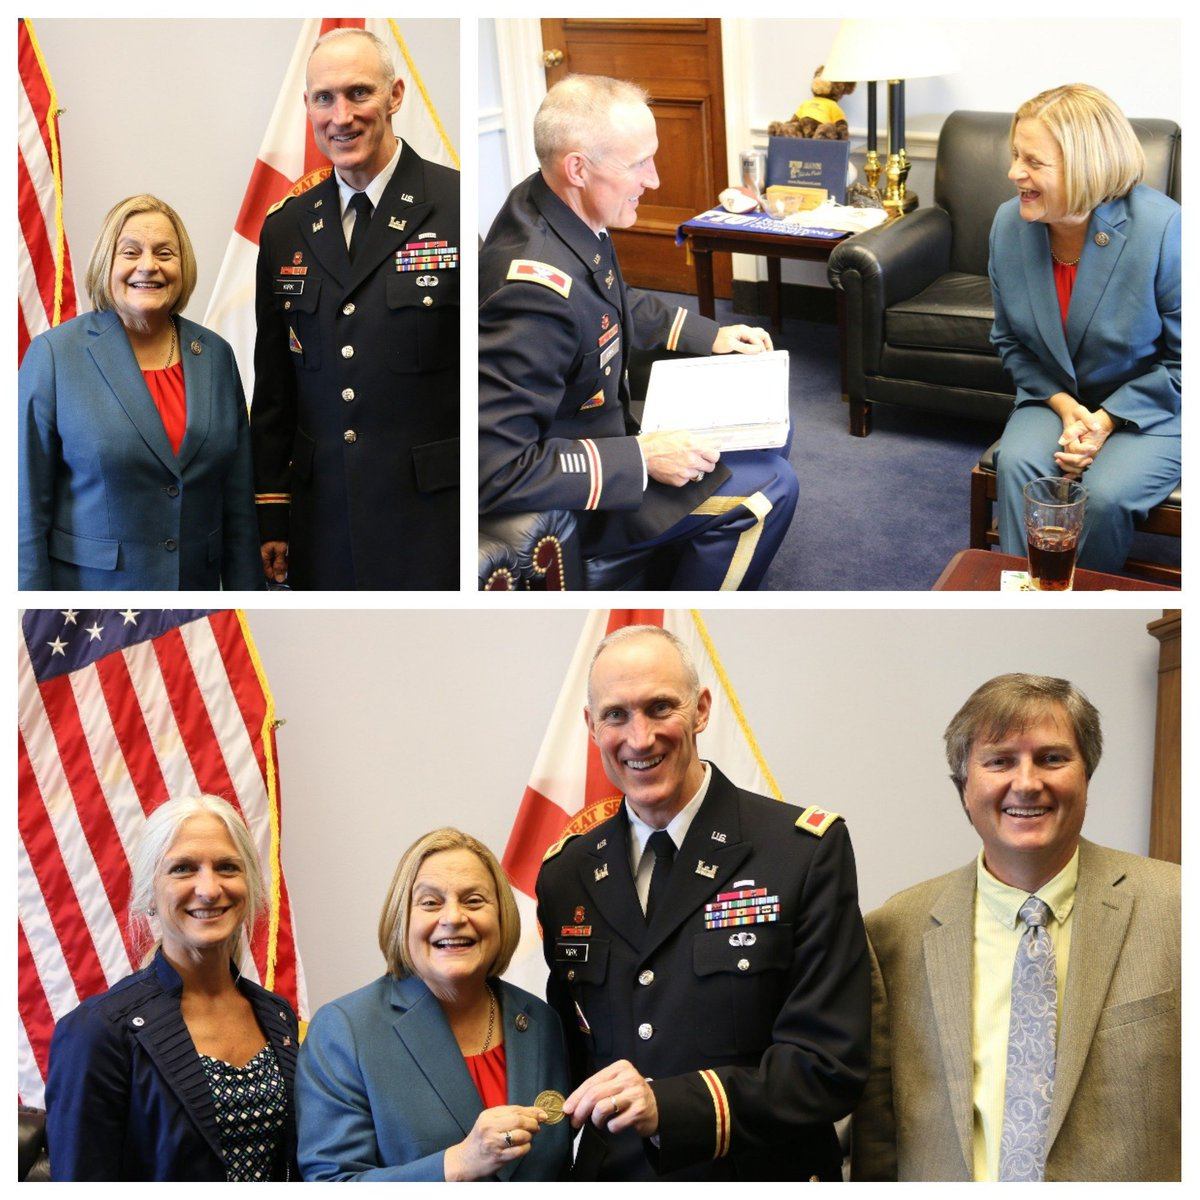 Met with U.S. Army Corps of Engineers Jacksonville District Commander Colonel Jason Kirk.We talked #EvergladesRestoration, beach renourishment + big plans @PortMiami. Impt projects which will energize our local economy and preserve #SoFla's national treasures. @USACEHQ @JaxStrong